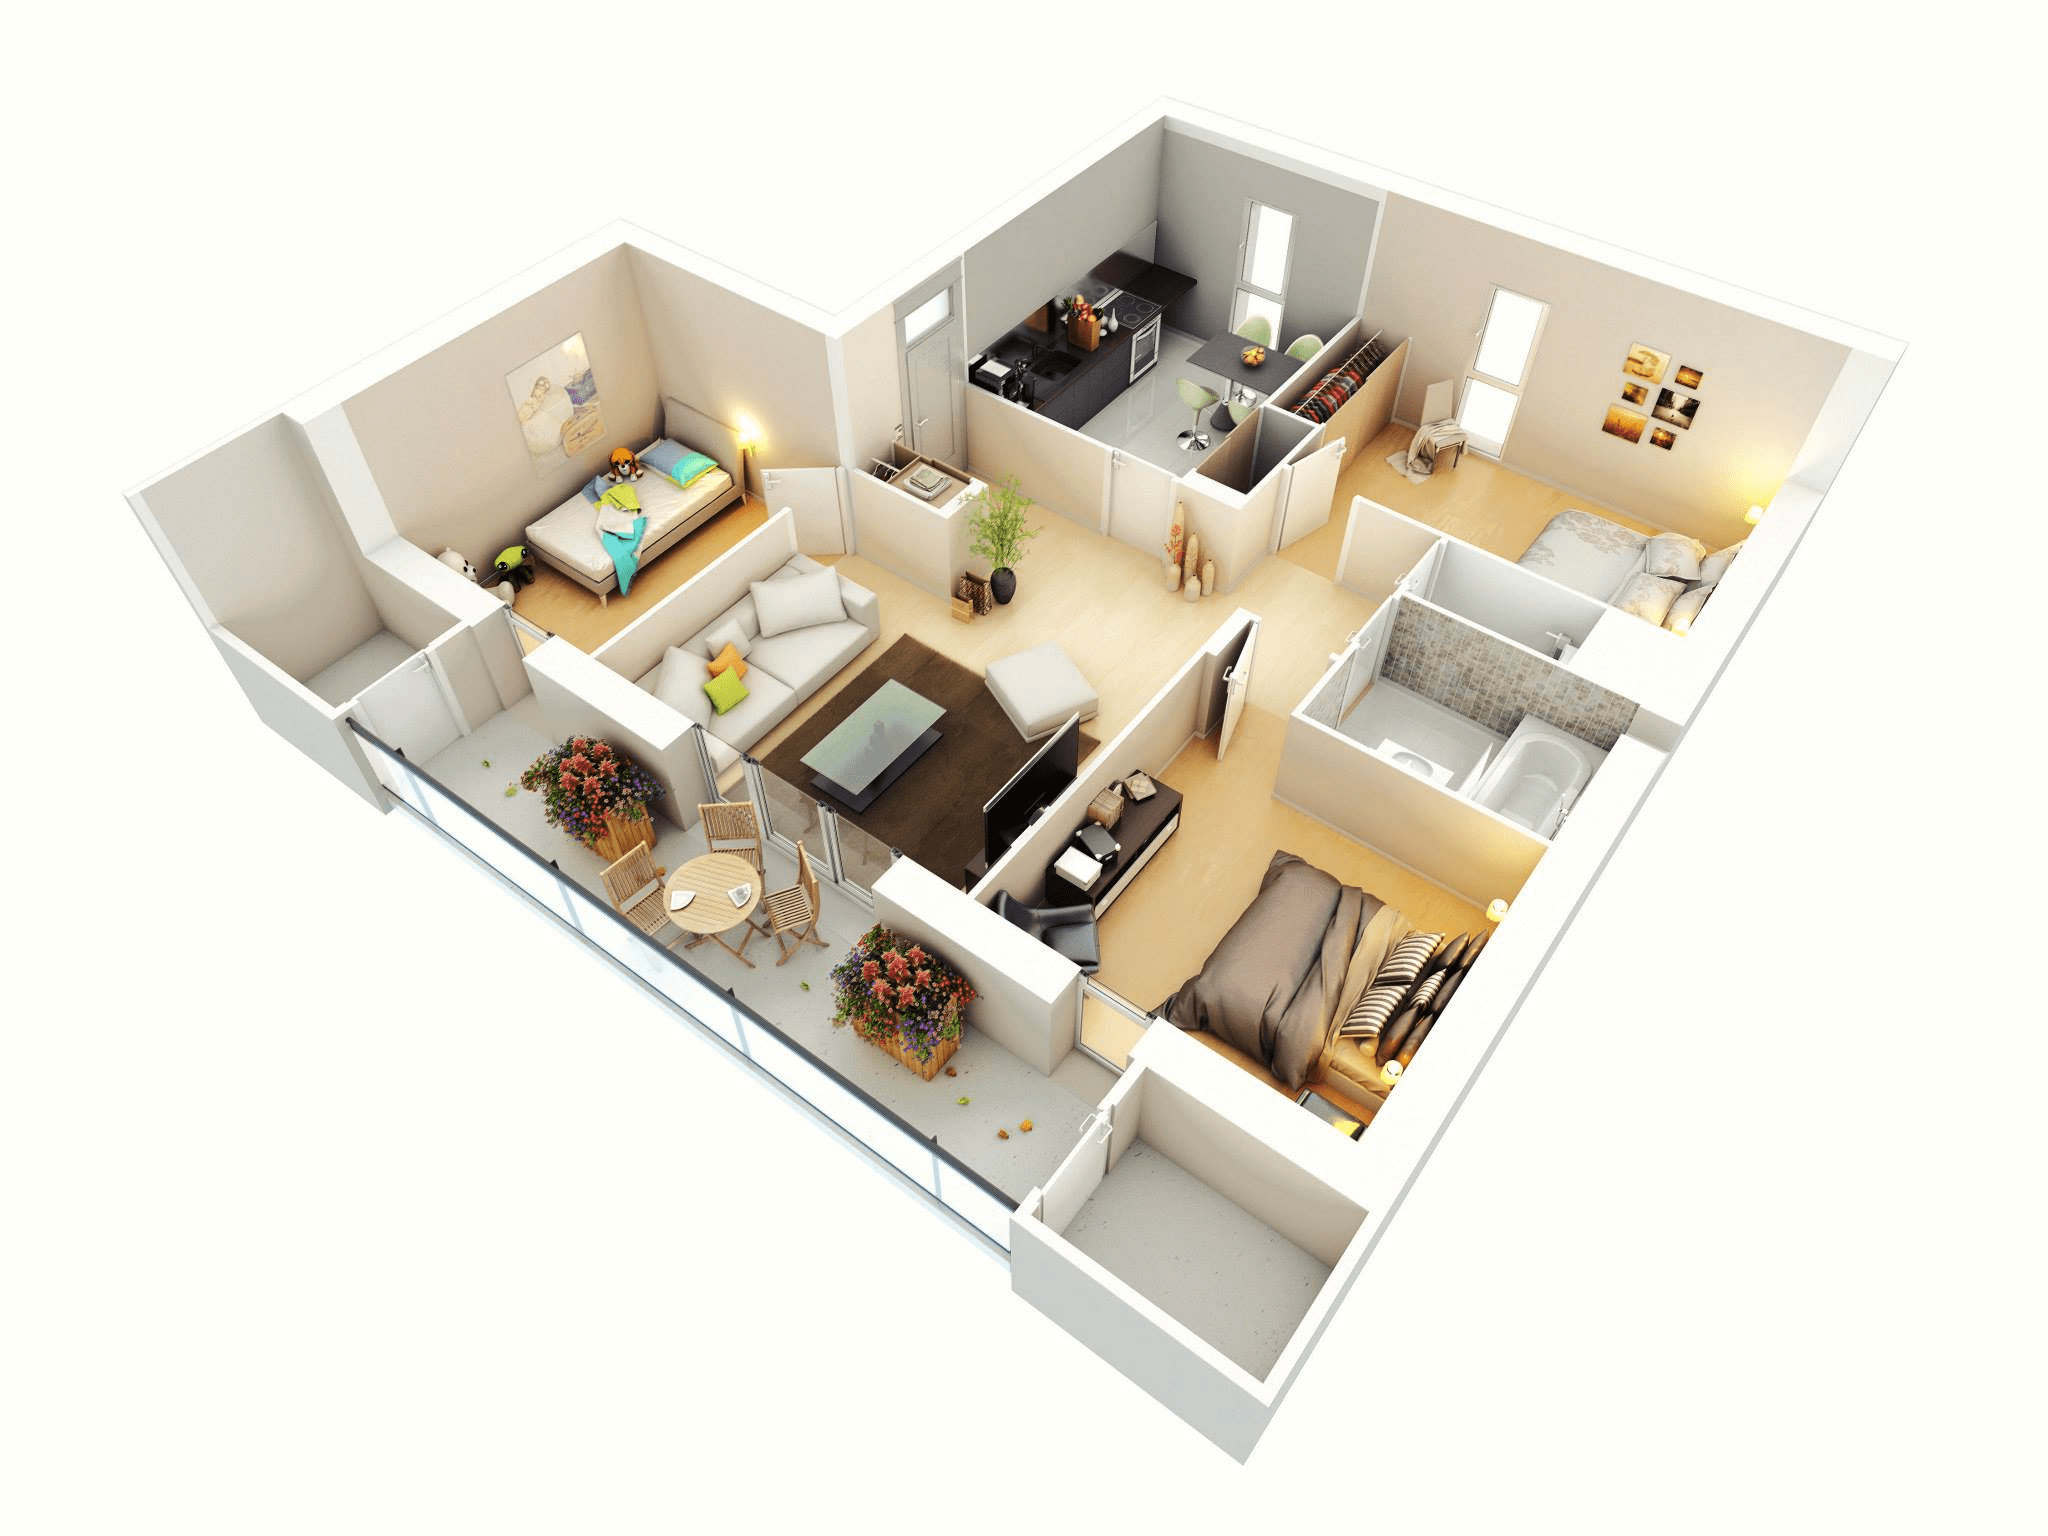 3d three bedroom house layout design plans 23034 for 3d house plans